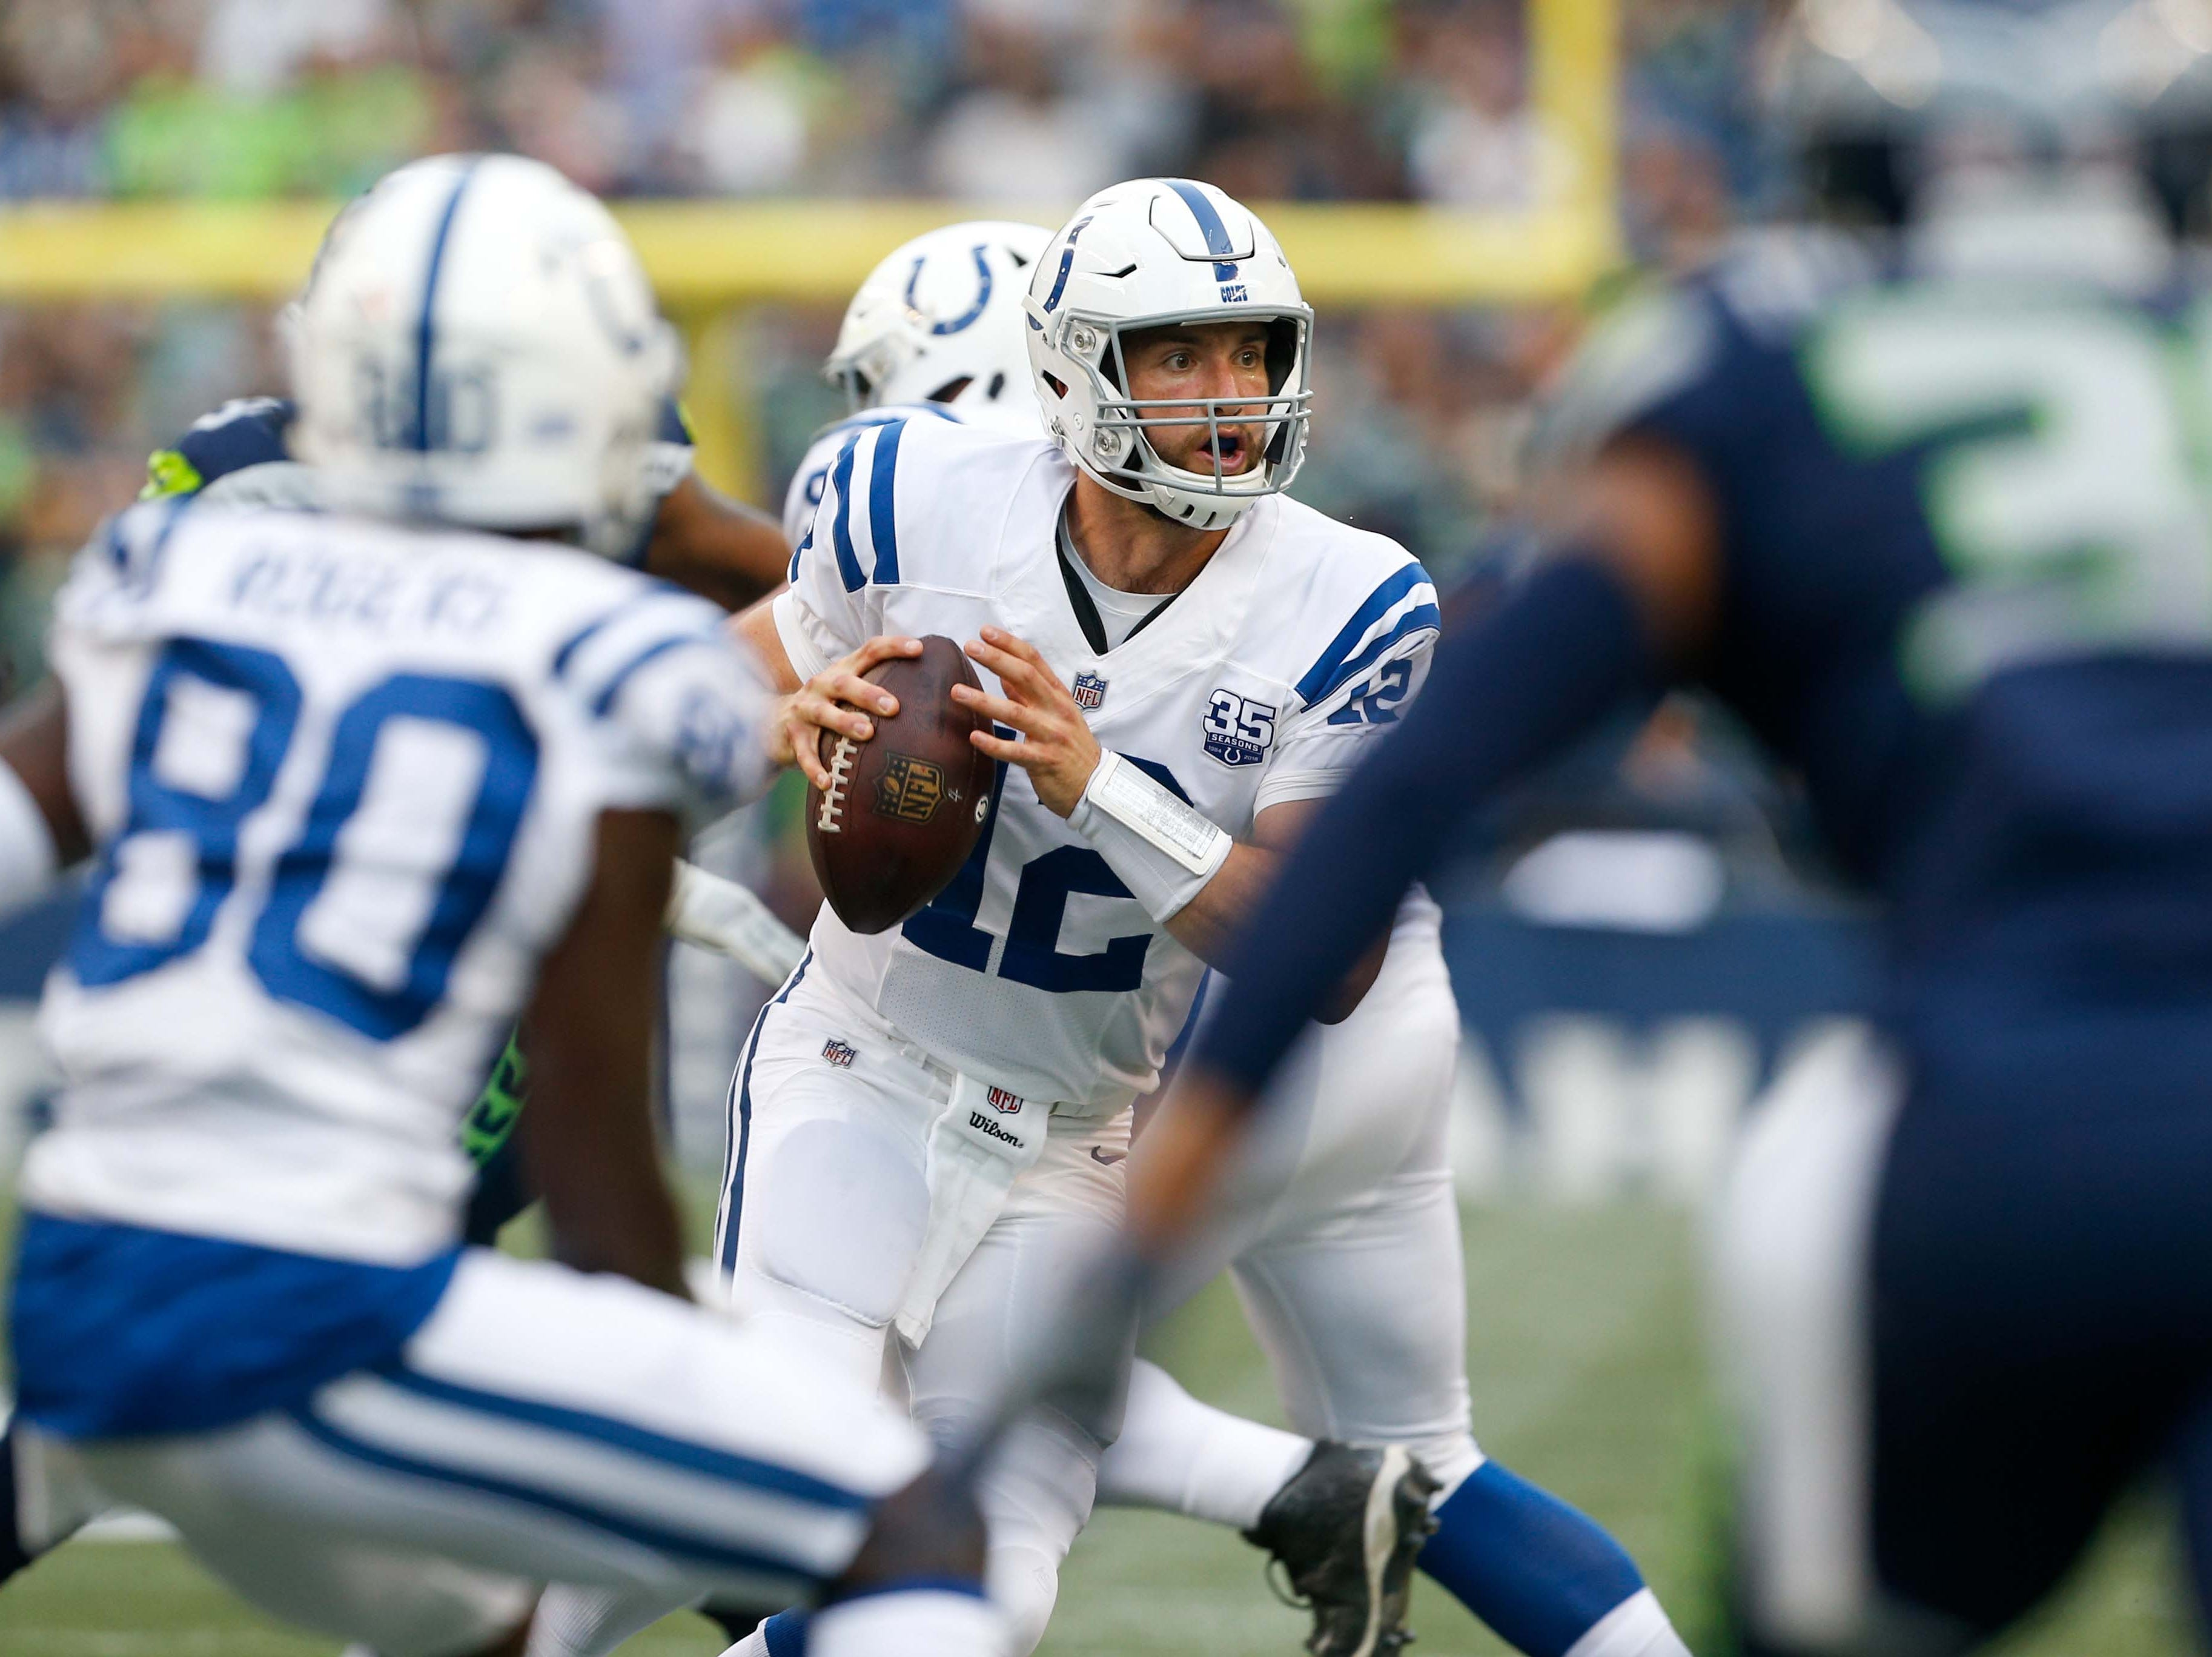 Indianapolis Colts quarterback Andrew Luck (12) looks to pass against the Seattle Seahawks during the first quarter at CenturyLink Field.